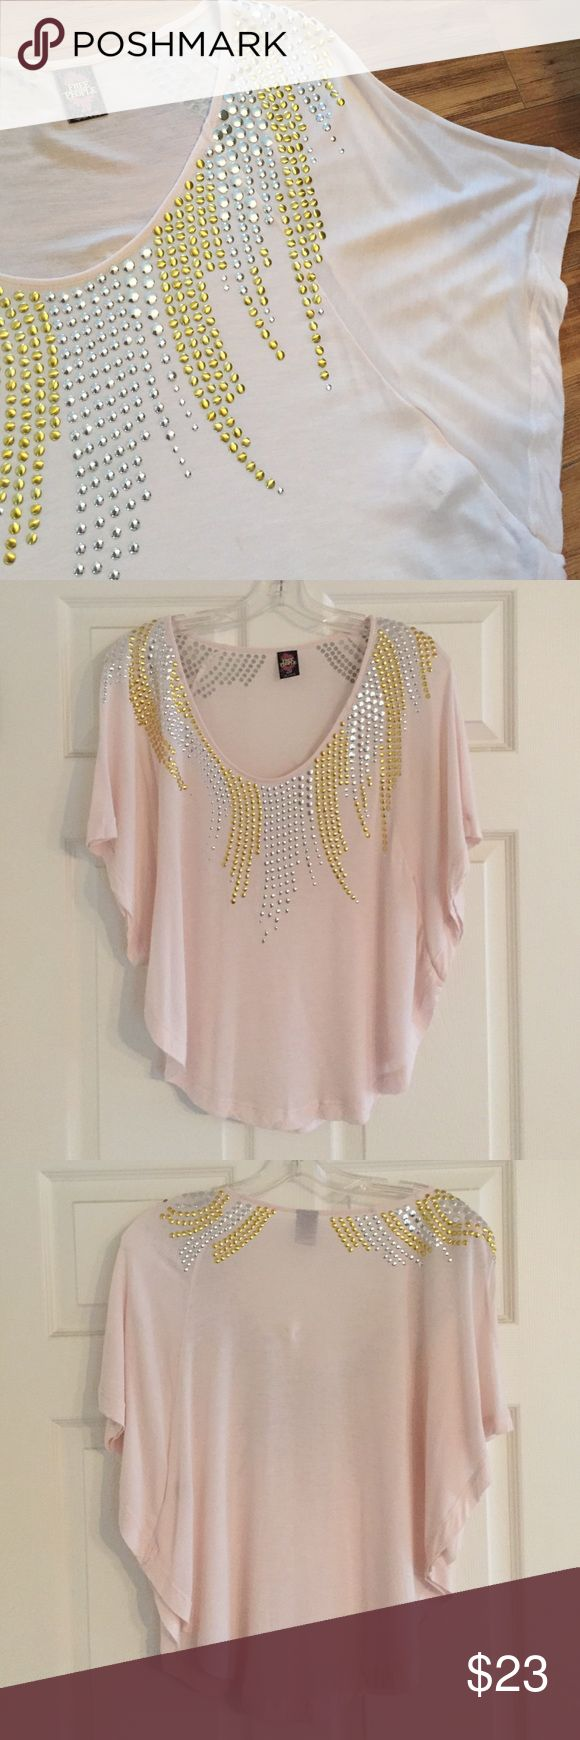 Free People Blush Pink Batwing Top w/Metal Detail Blush pink batwing top with dolman sleeves and gold & silver metal studs around neckline.  Drapey and gorgeous on!  This top gives an exclamation point to any outfit!  Gently worn with one small spot on front (see photo).  100% viscose. Free People Tops Tees - Short Sleeve